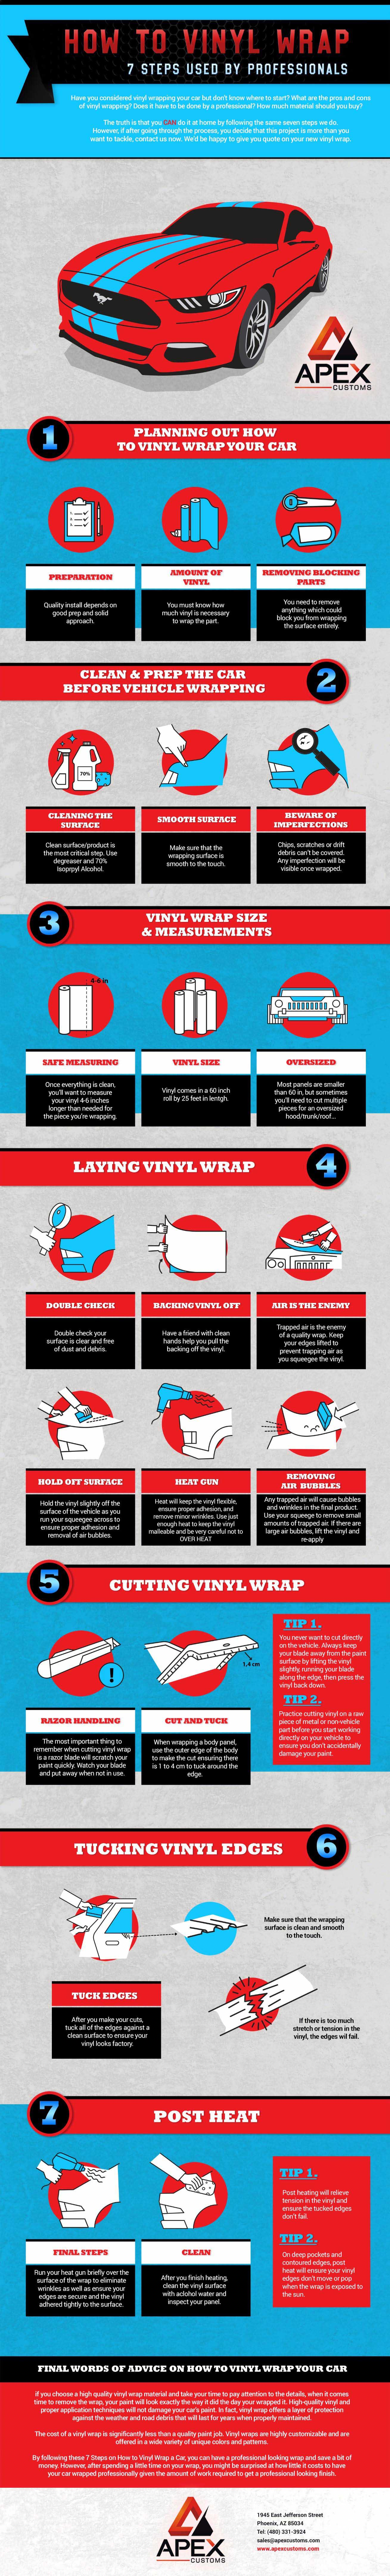 How to vinyl wrap the 7 steps used by professionals